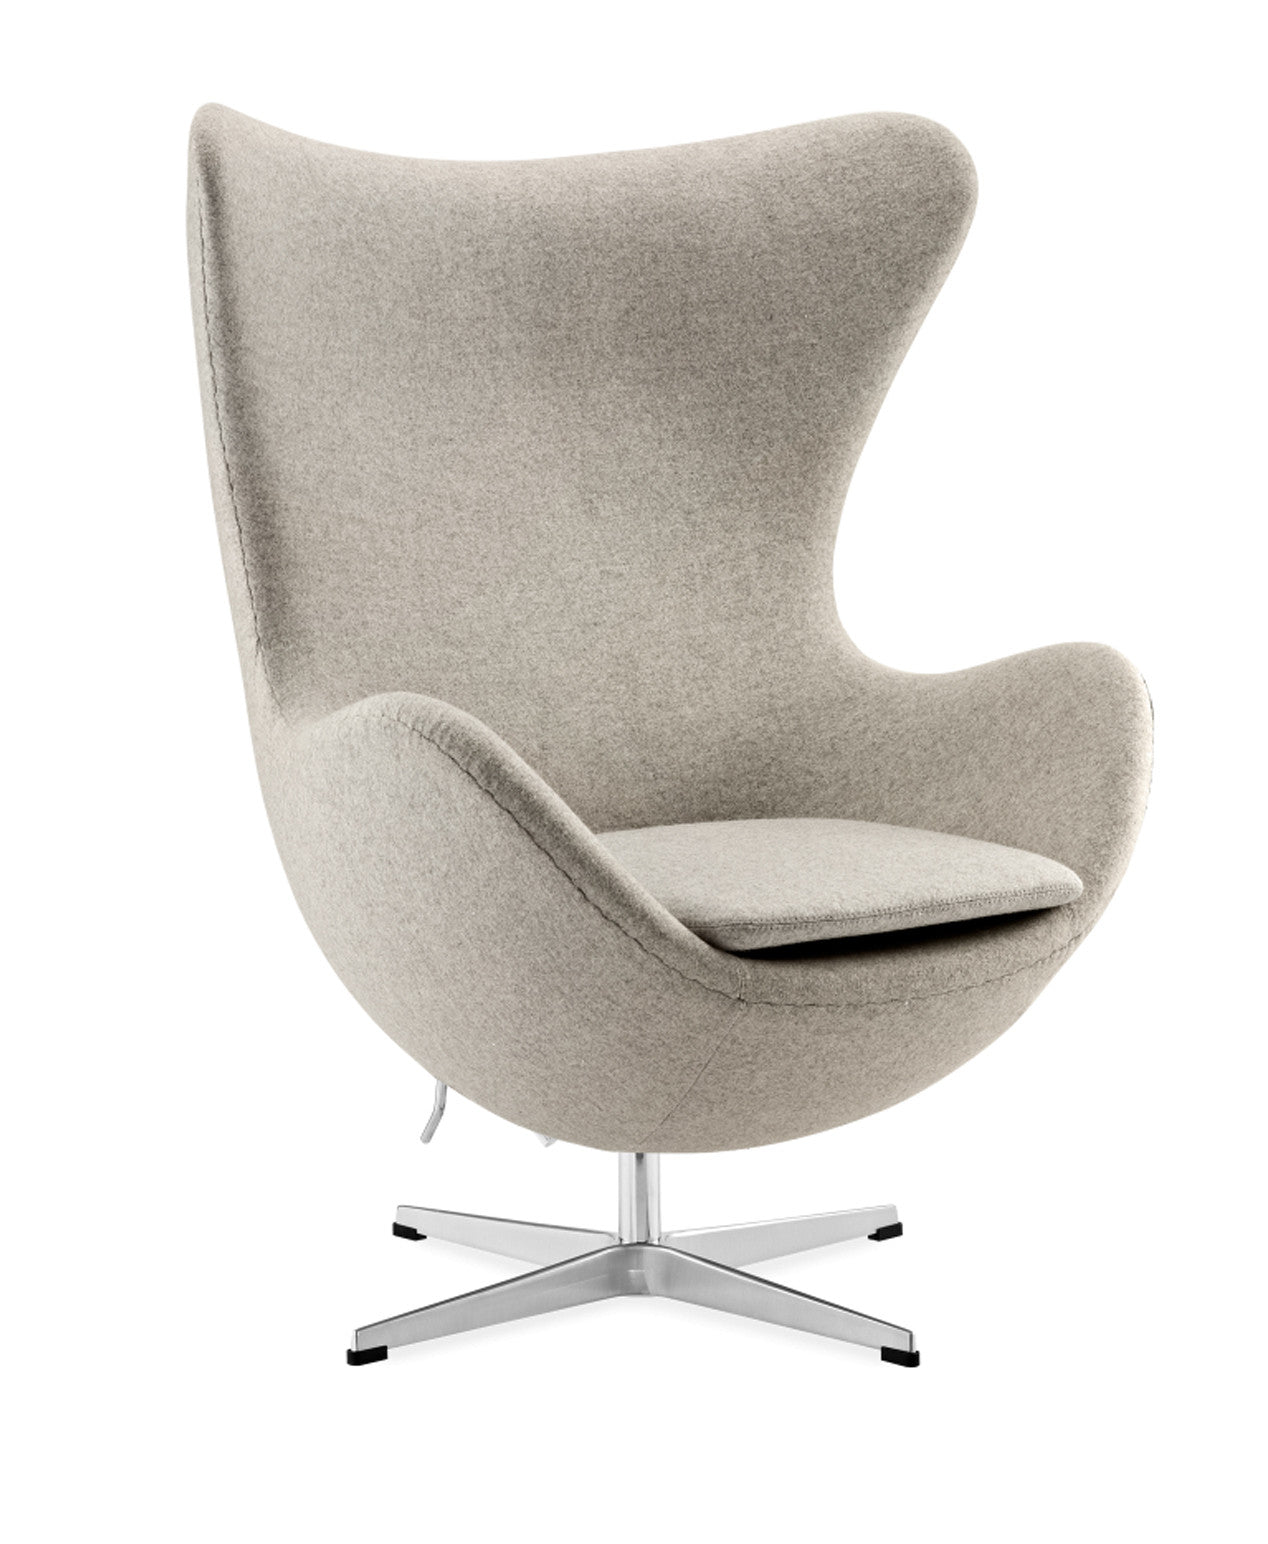 Design Egg Chair aj egg chair new zealand cashmere cashmere